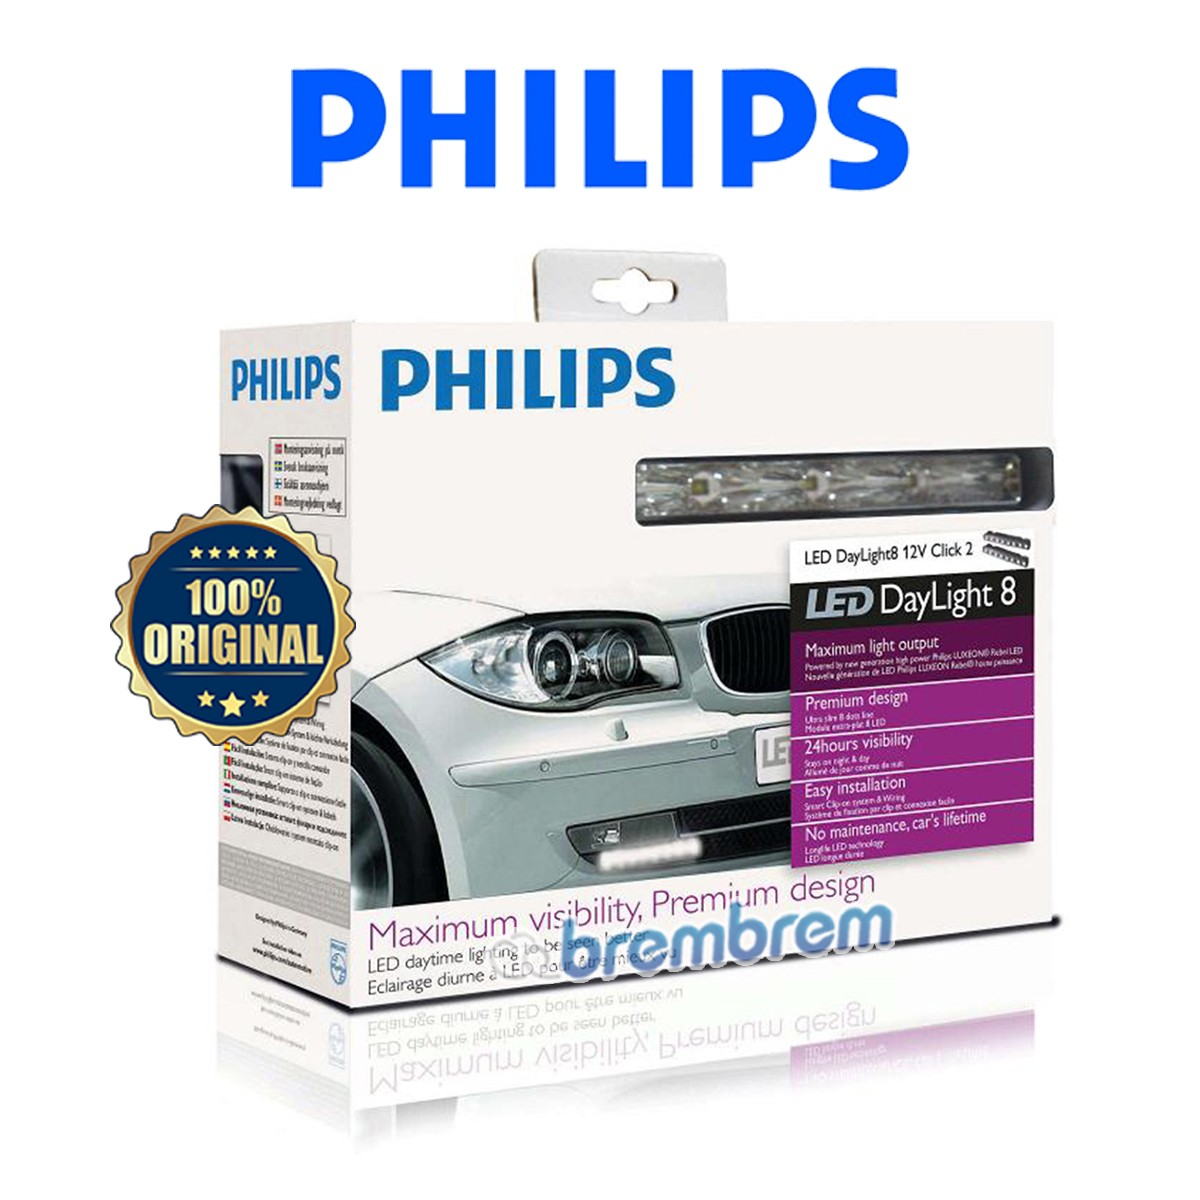 PHILIPS DAY LIGHT 8 WLED - LAMPU LED MOBIL